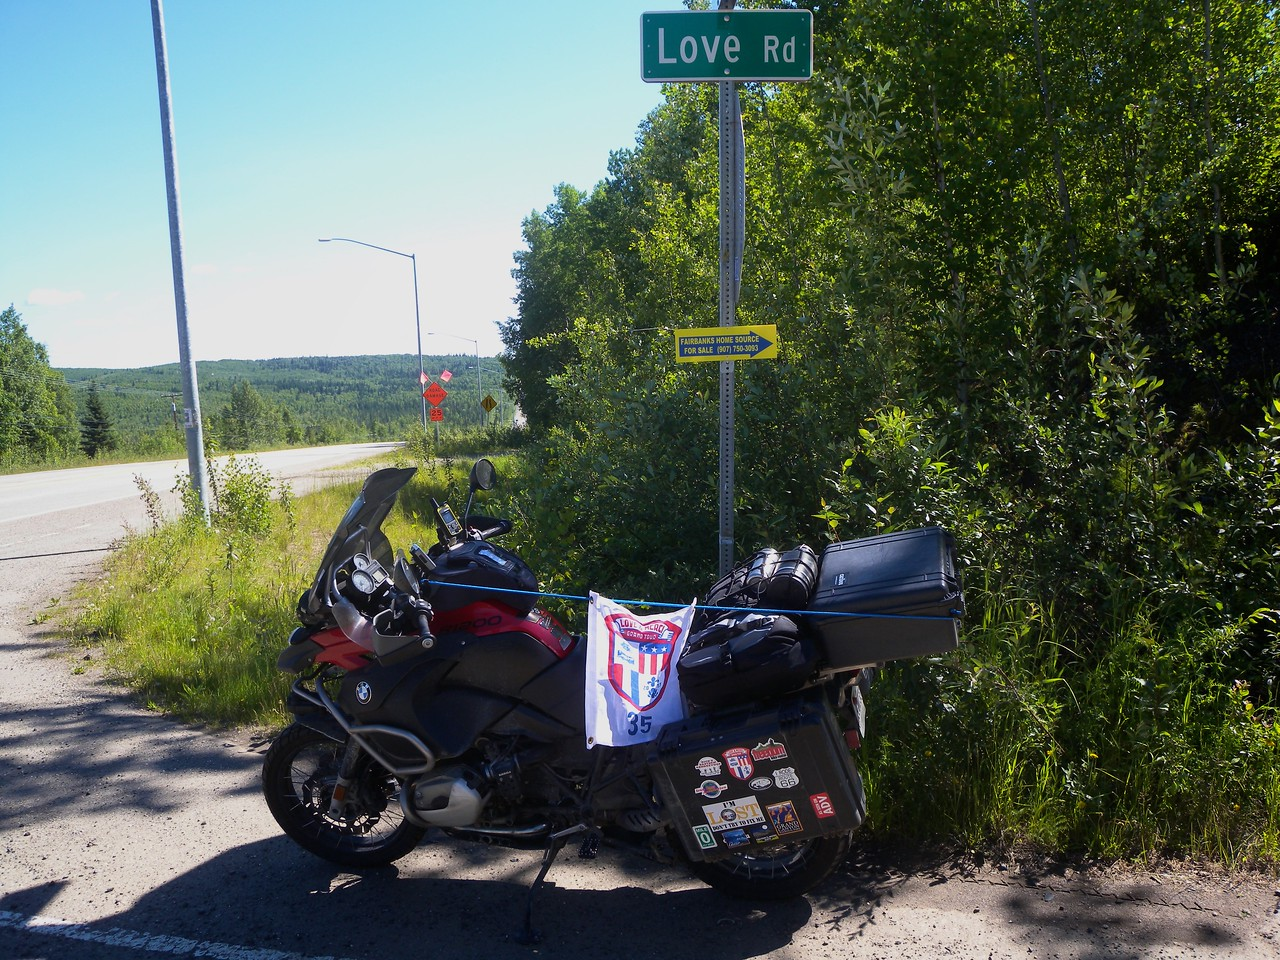 Love Road Bonus, Fairbanks, Alaska